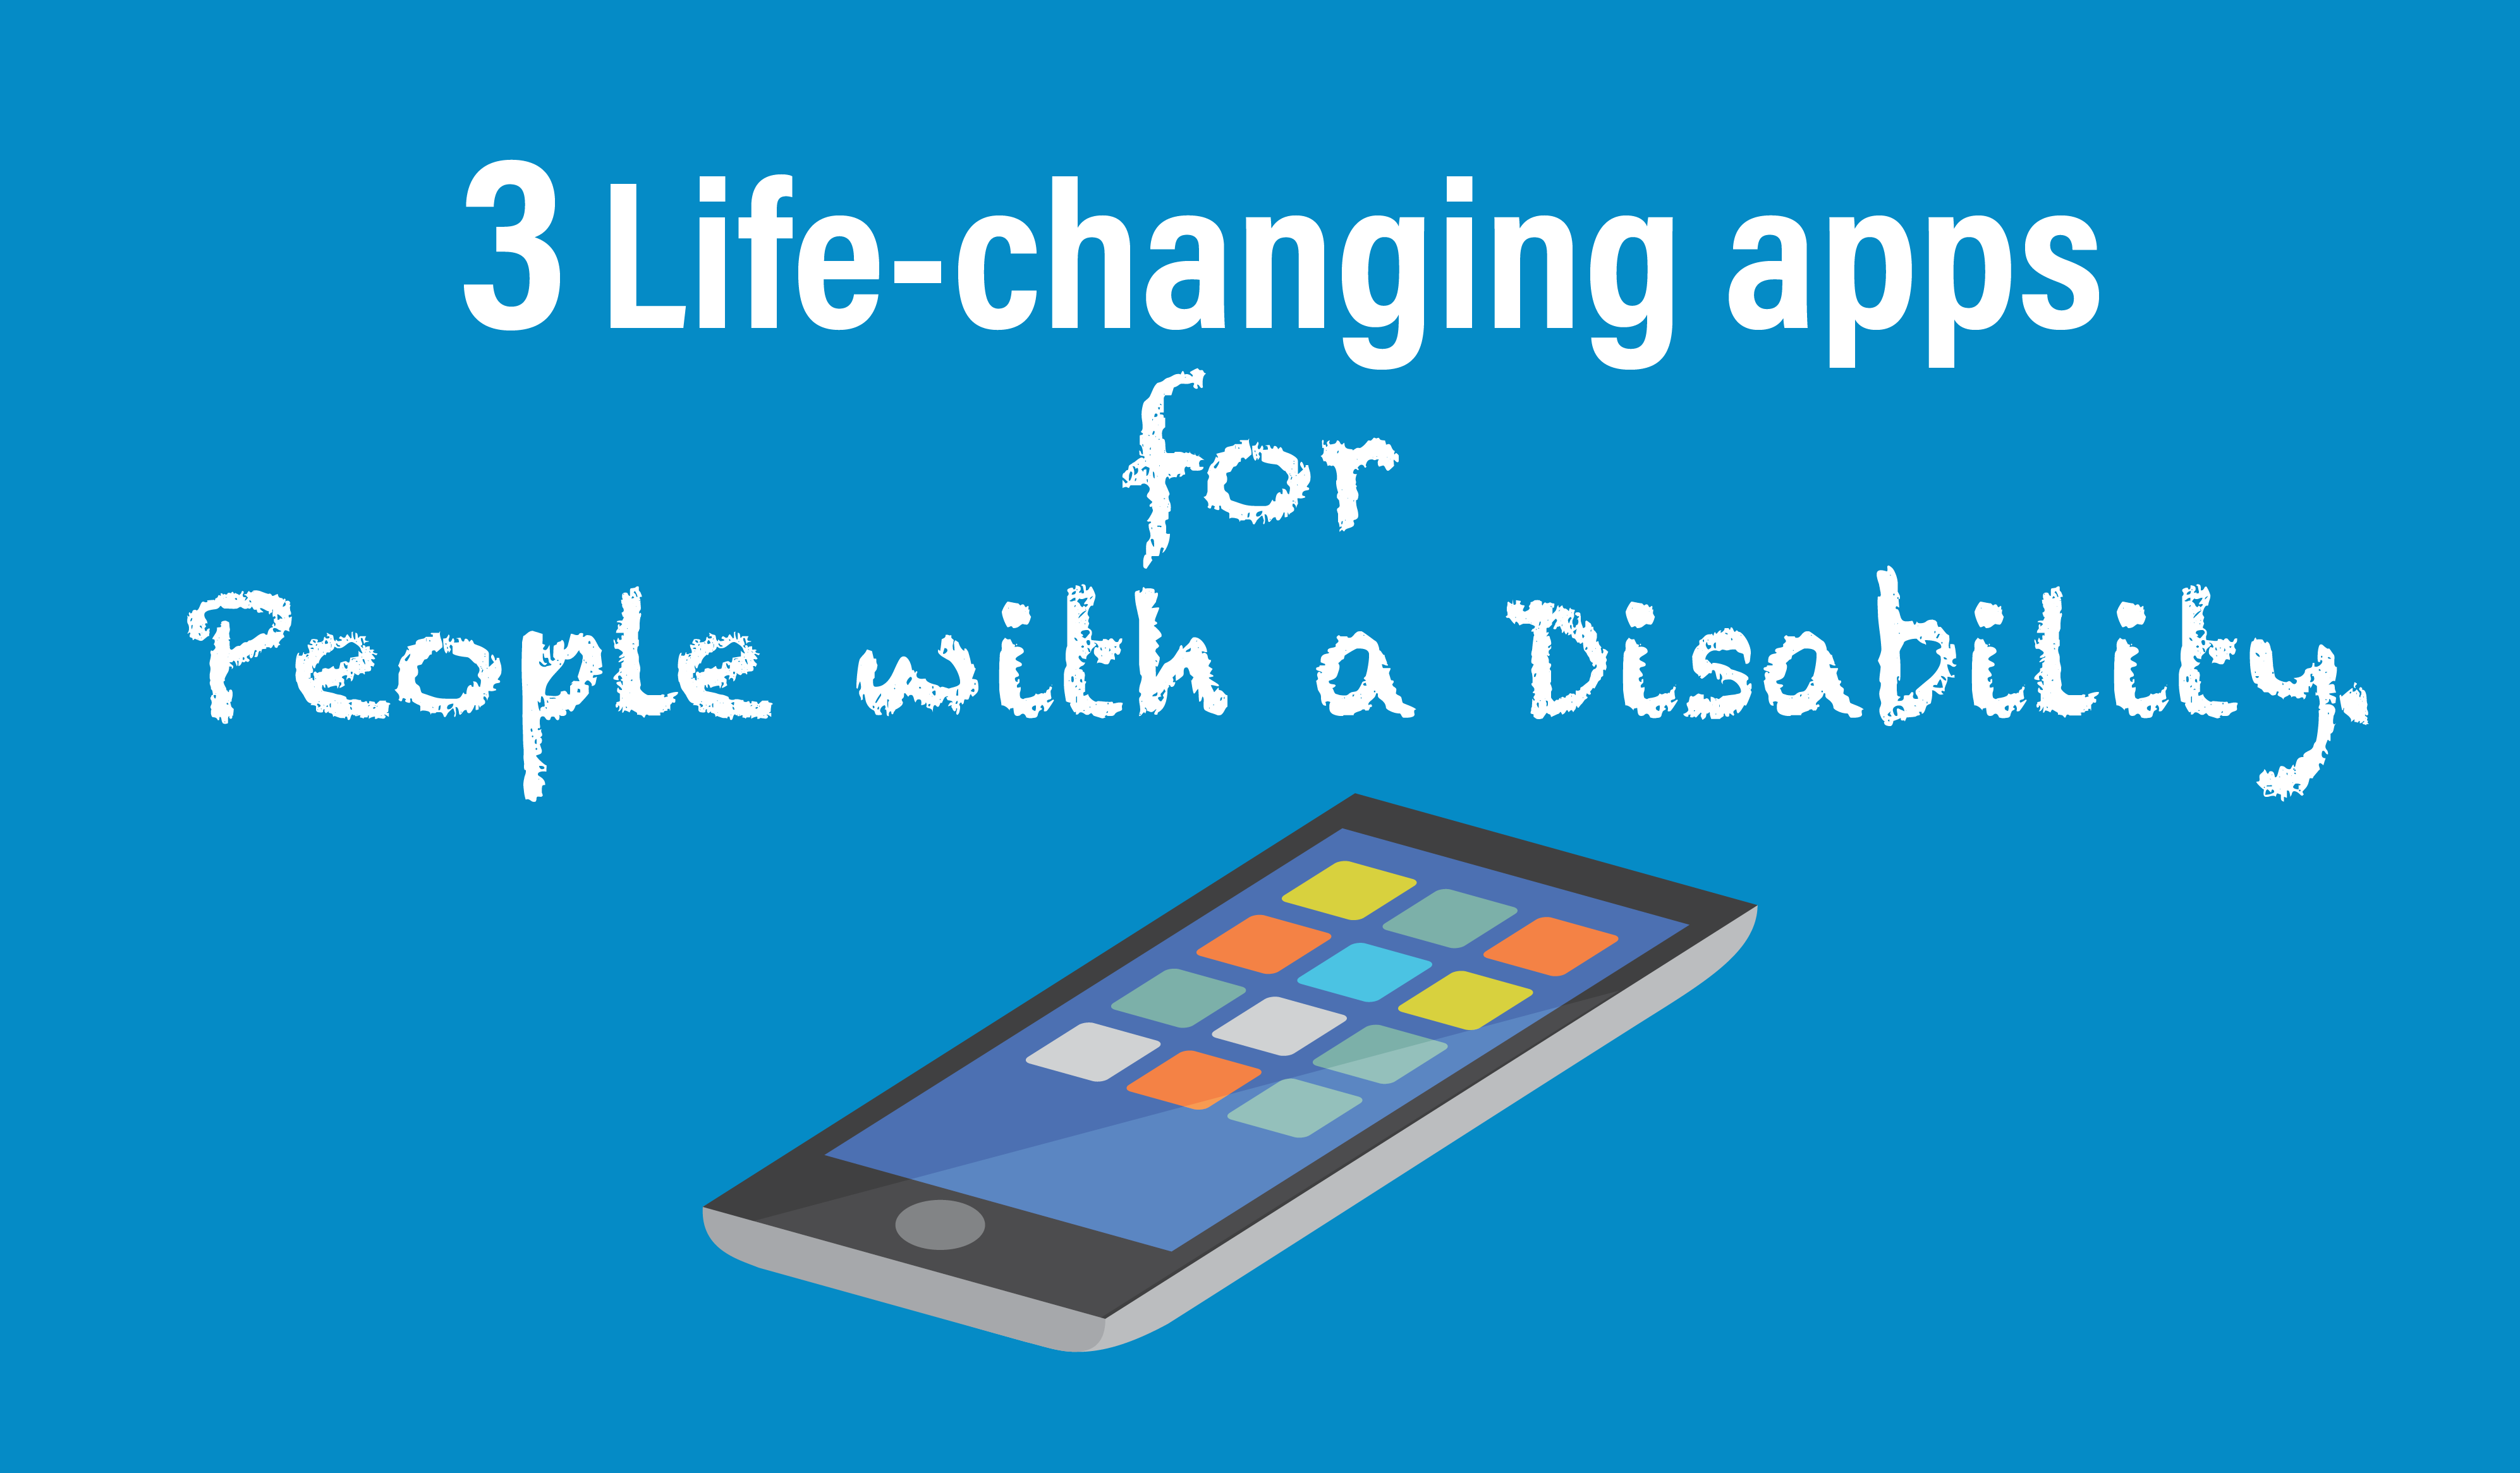 3 life-changing apps for people with a disability.